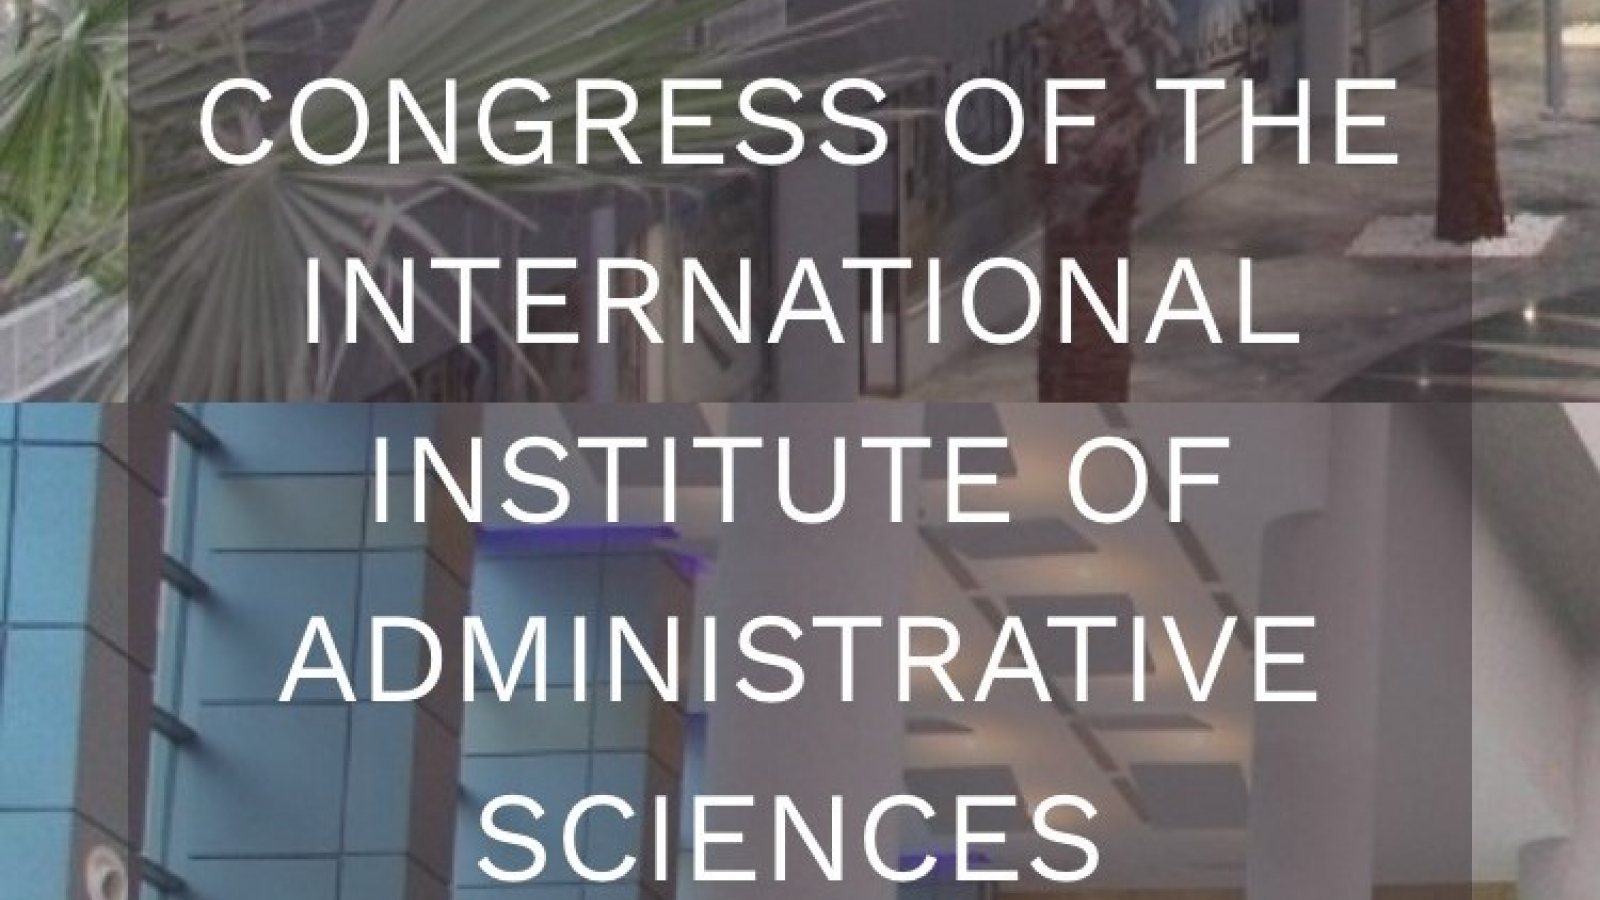 Congress of the International Institute of Administrative Sciences in Tunisia